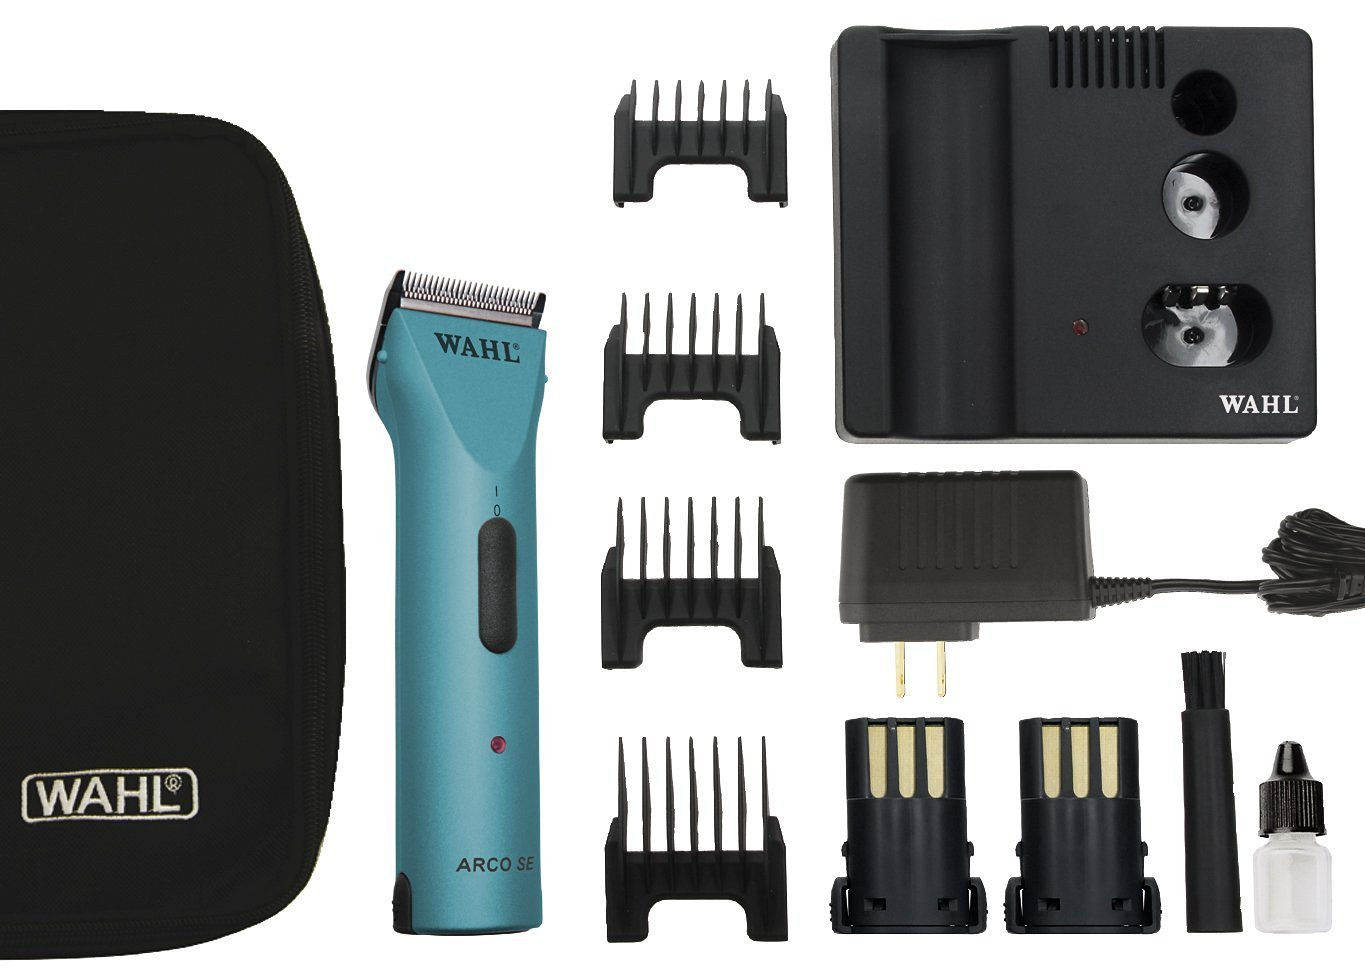 Wahl Professional Animal Powerful Motor ARCO Cordless Clipper Kit #45 Blade with bonus Blade Brush included (Turquoise)